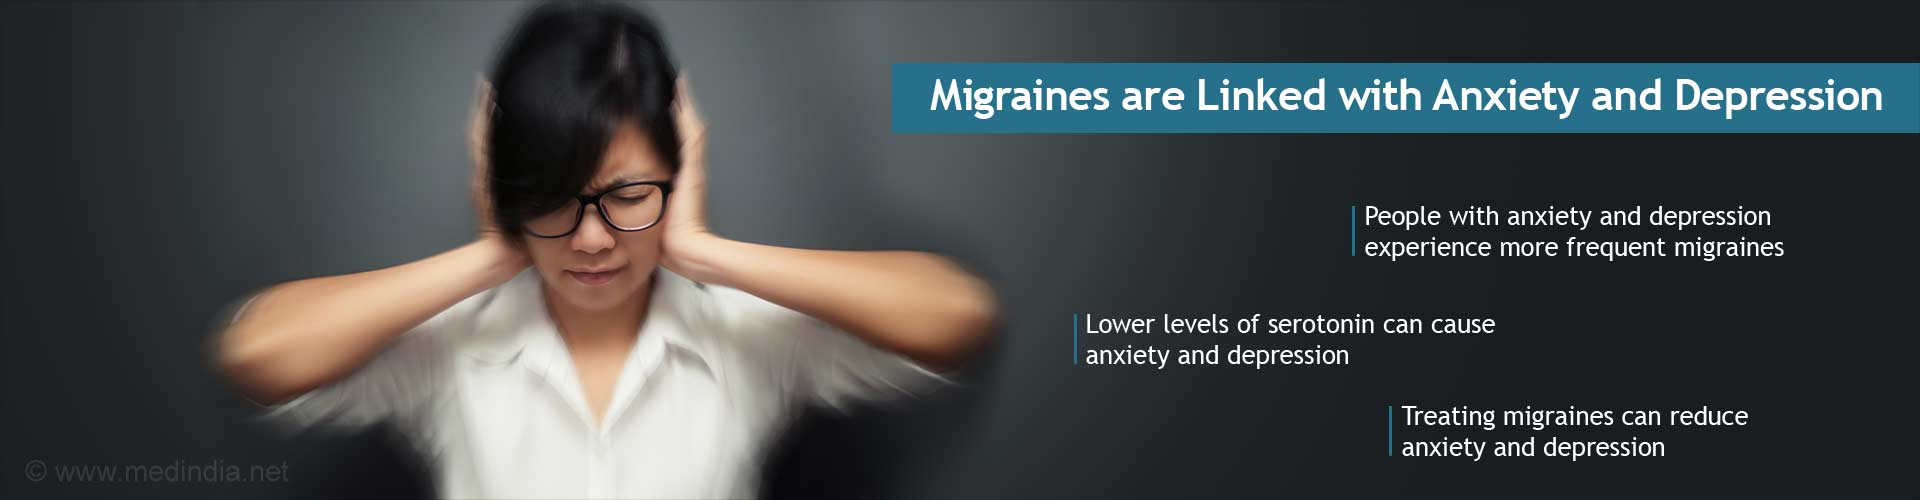 Migraines are linked with anxiety and depression